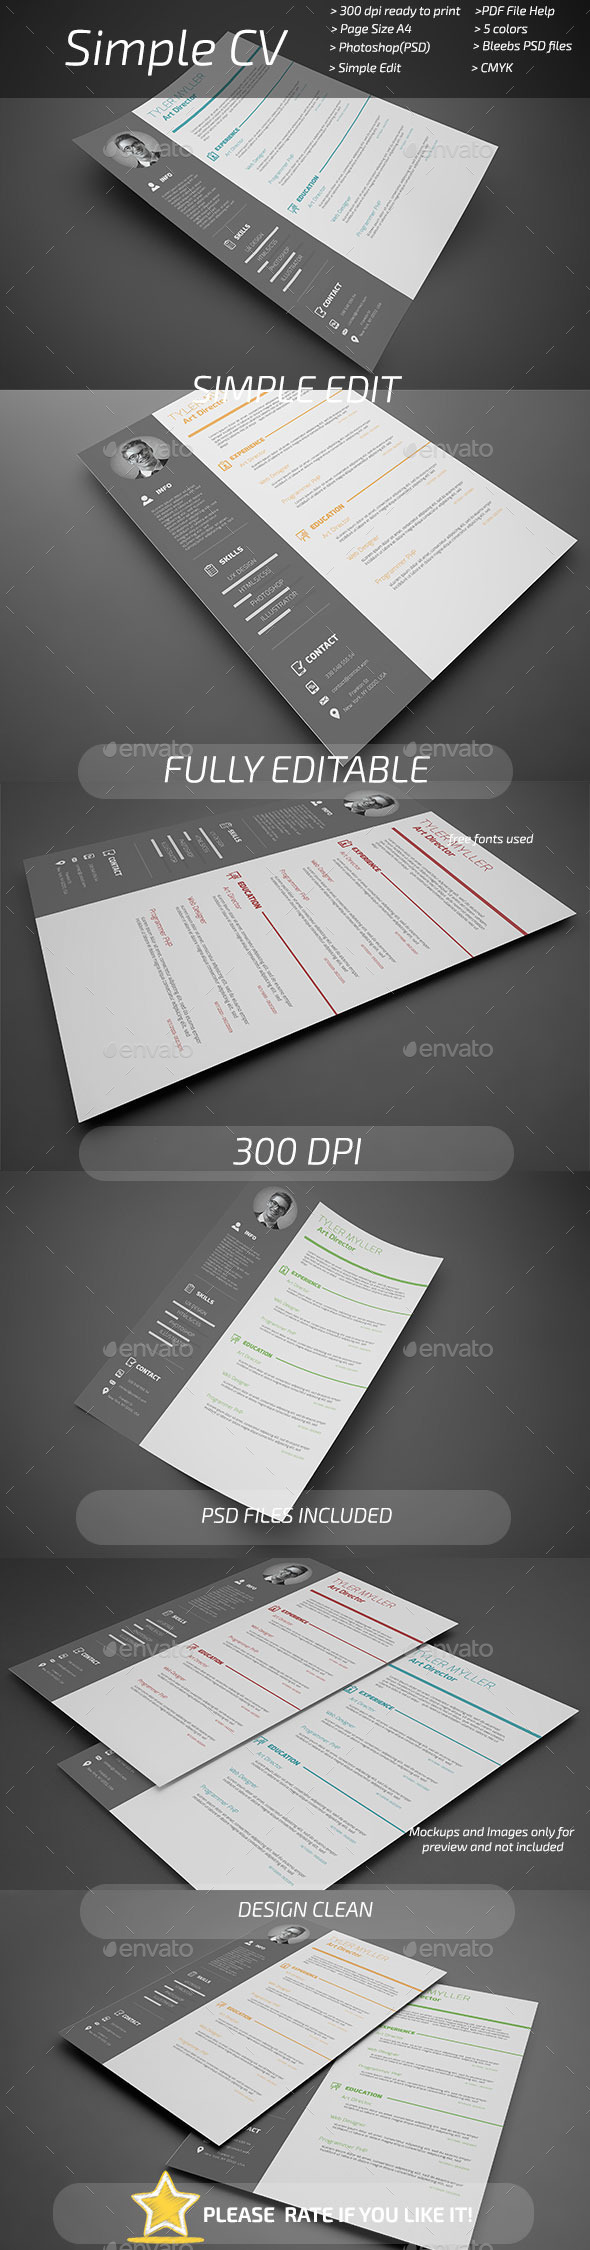 GraphicRiver Simple CV 11069364